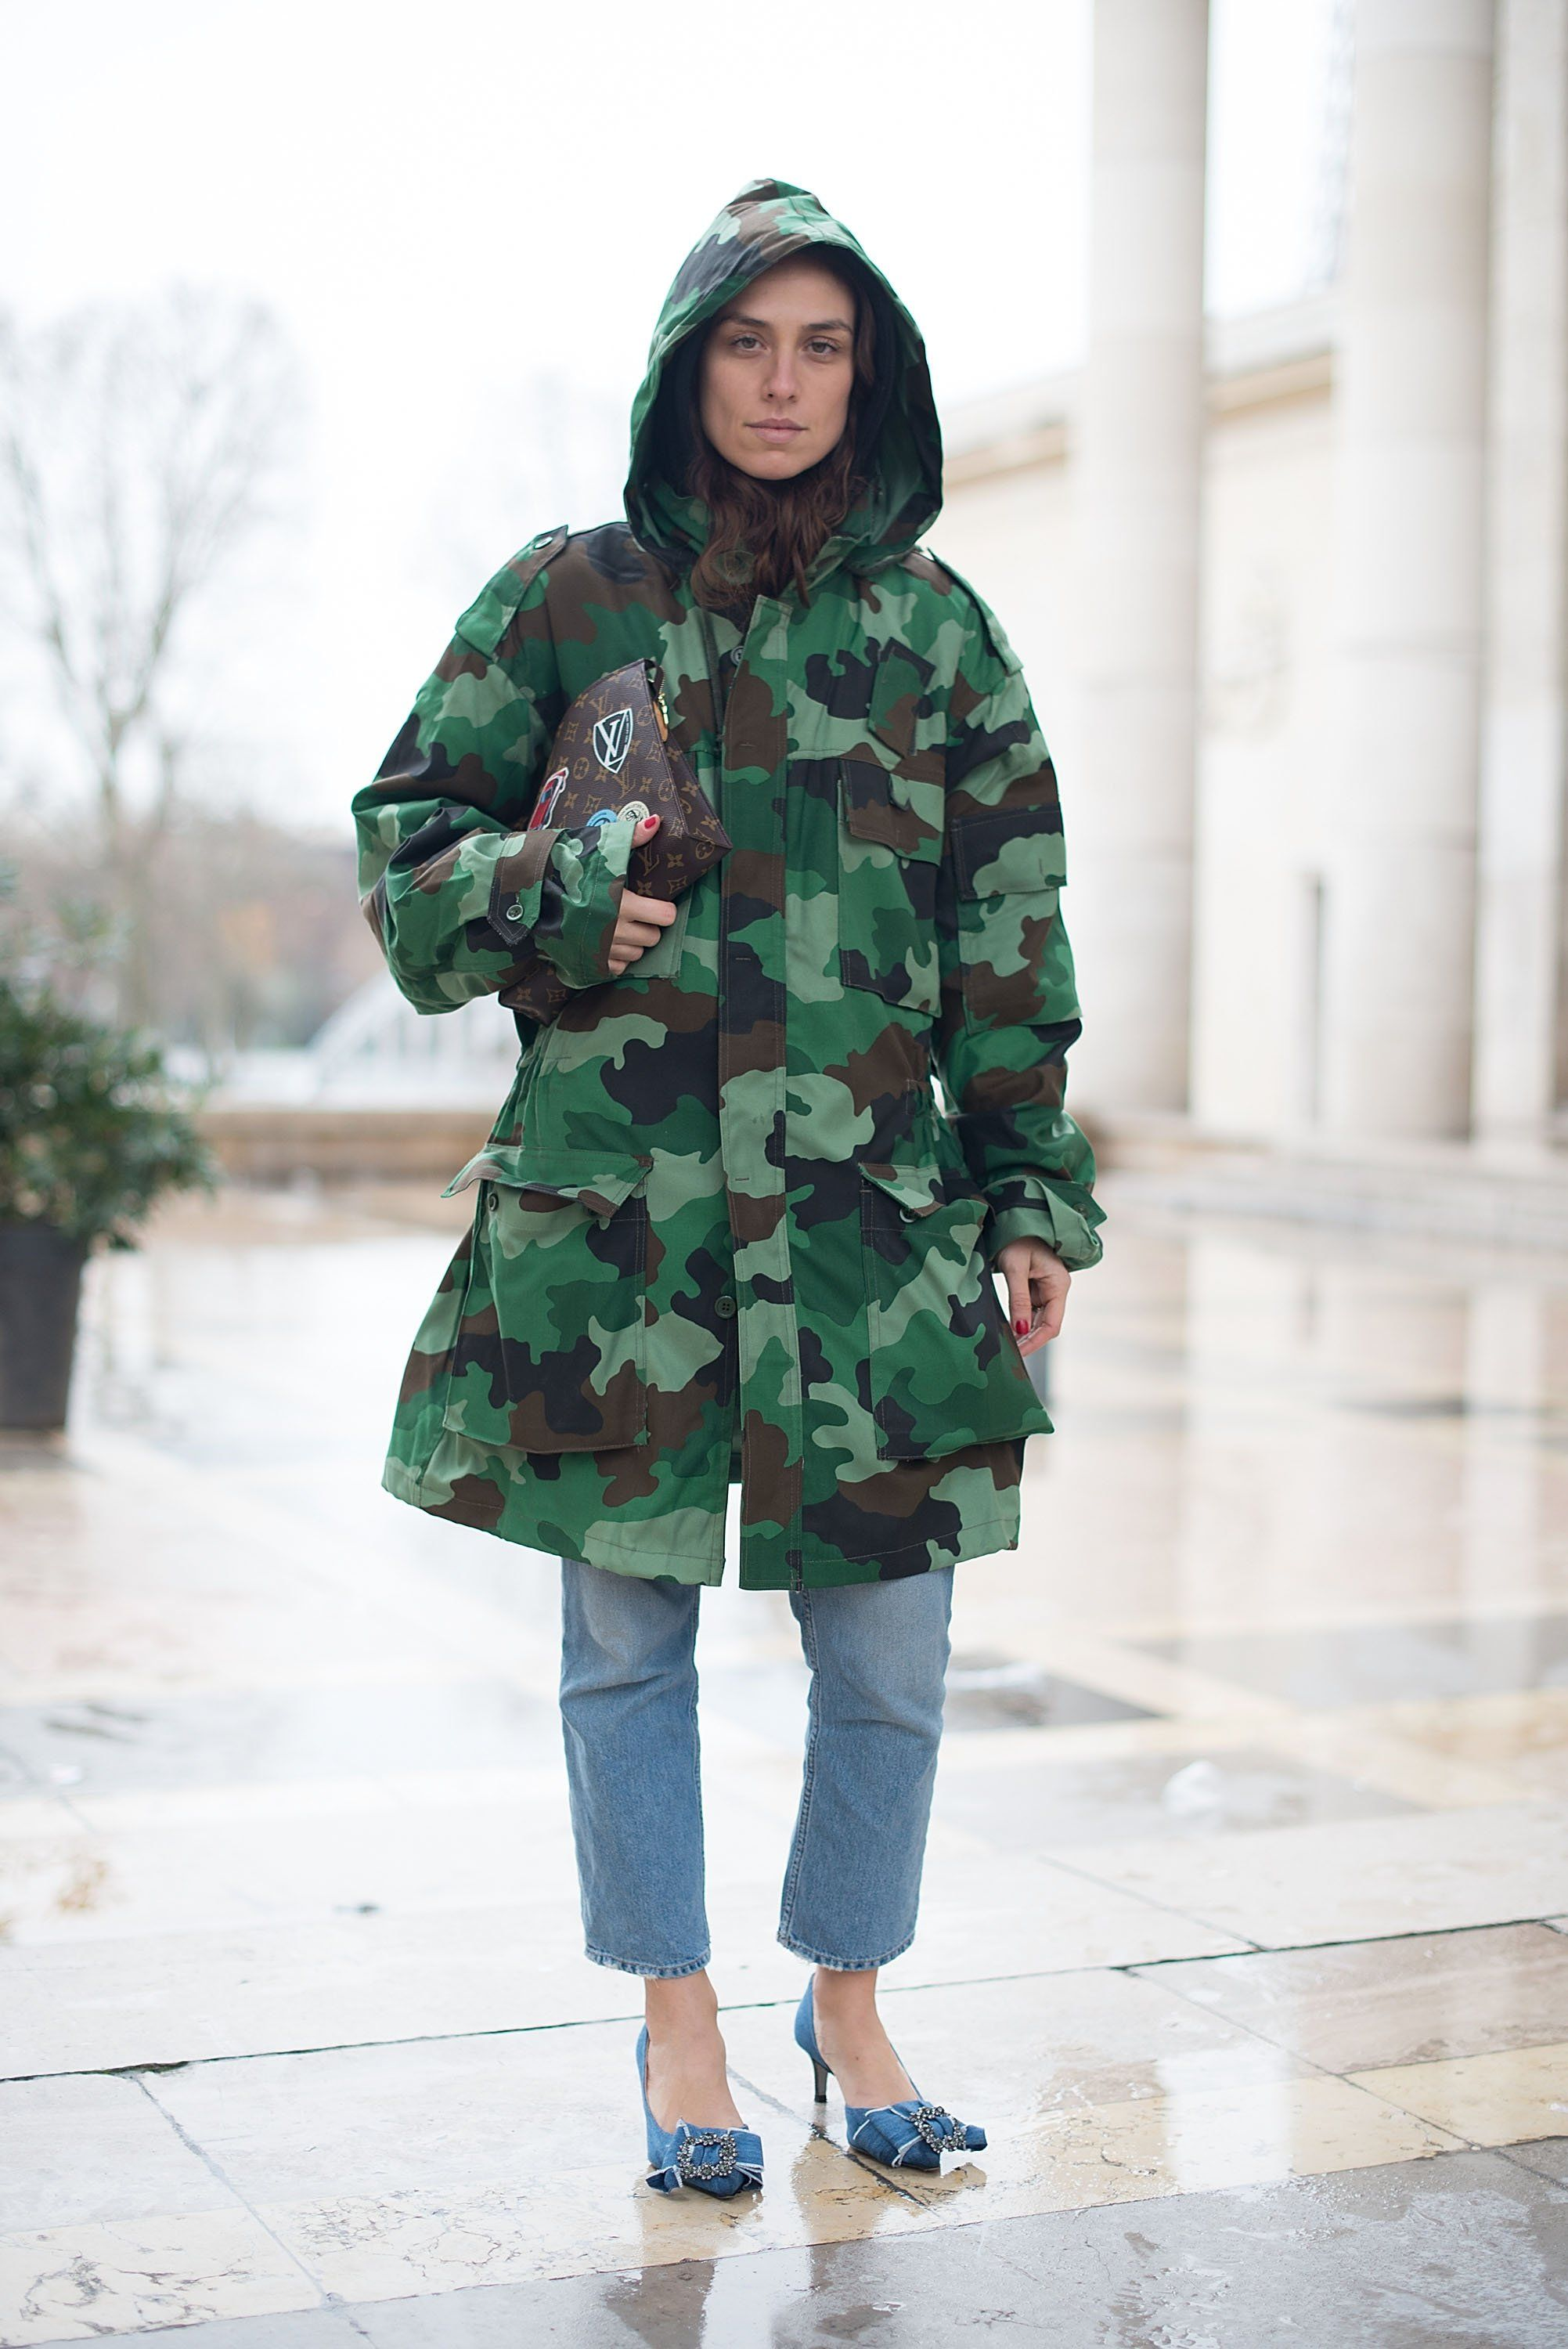 How to camouflage a wear print jacket photo